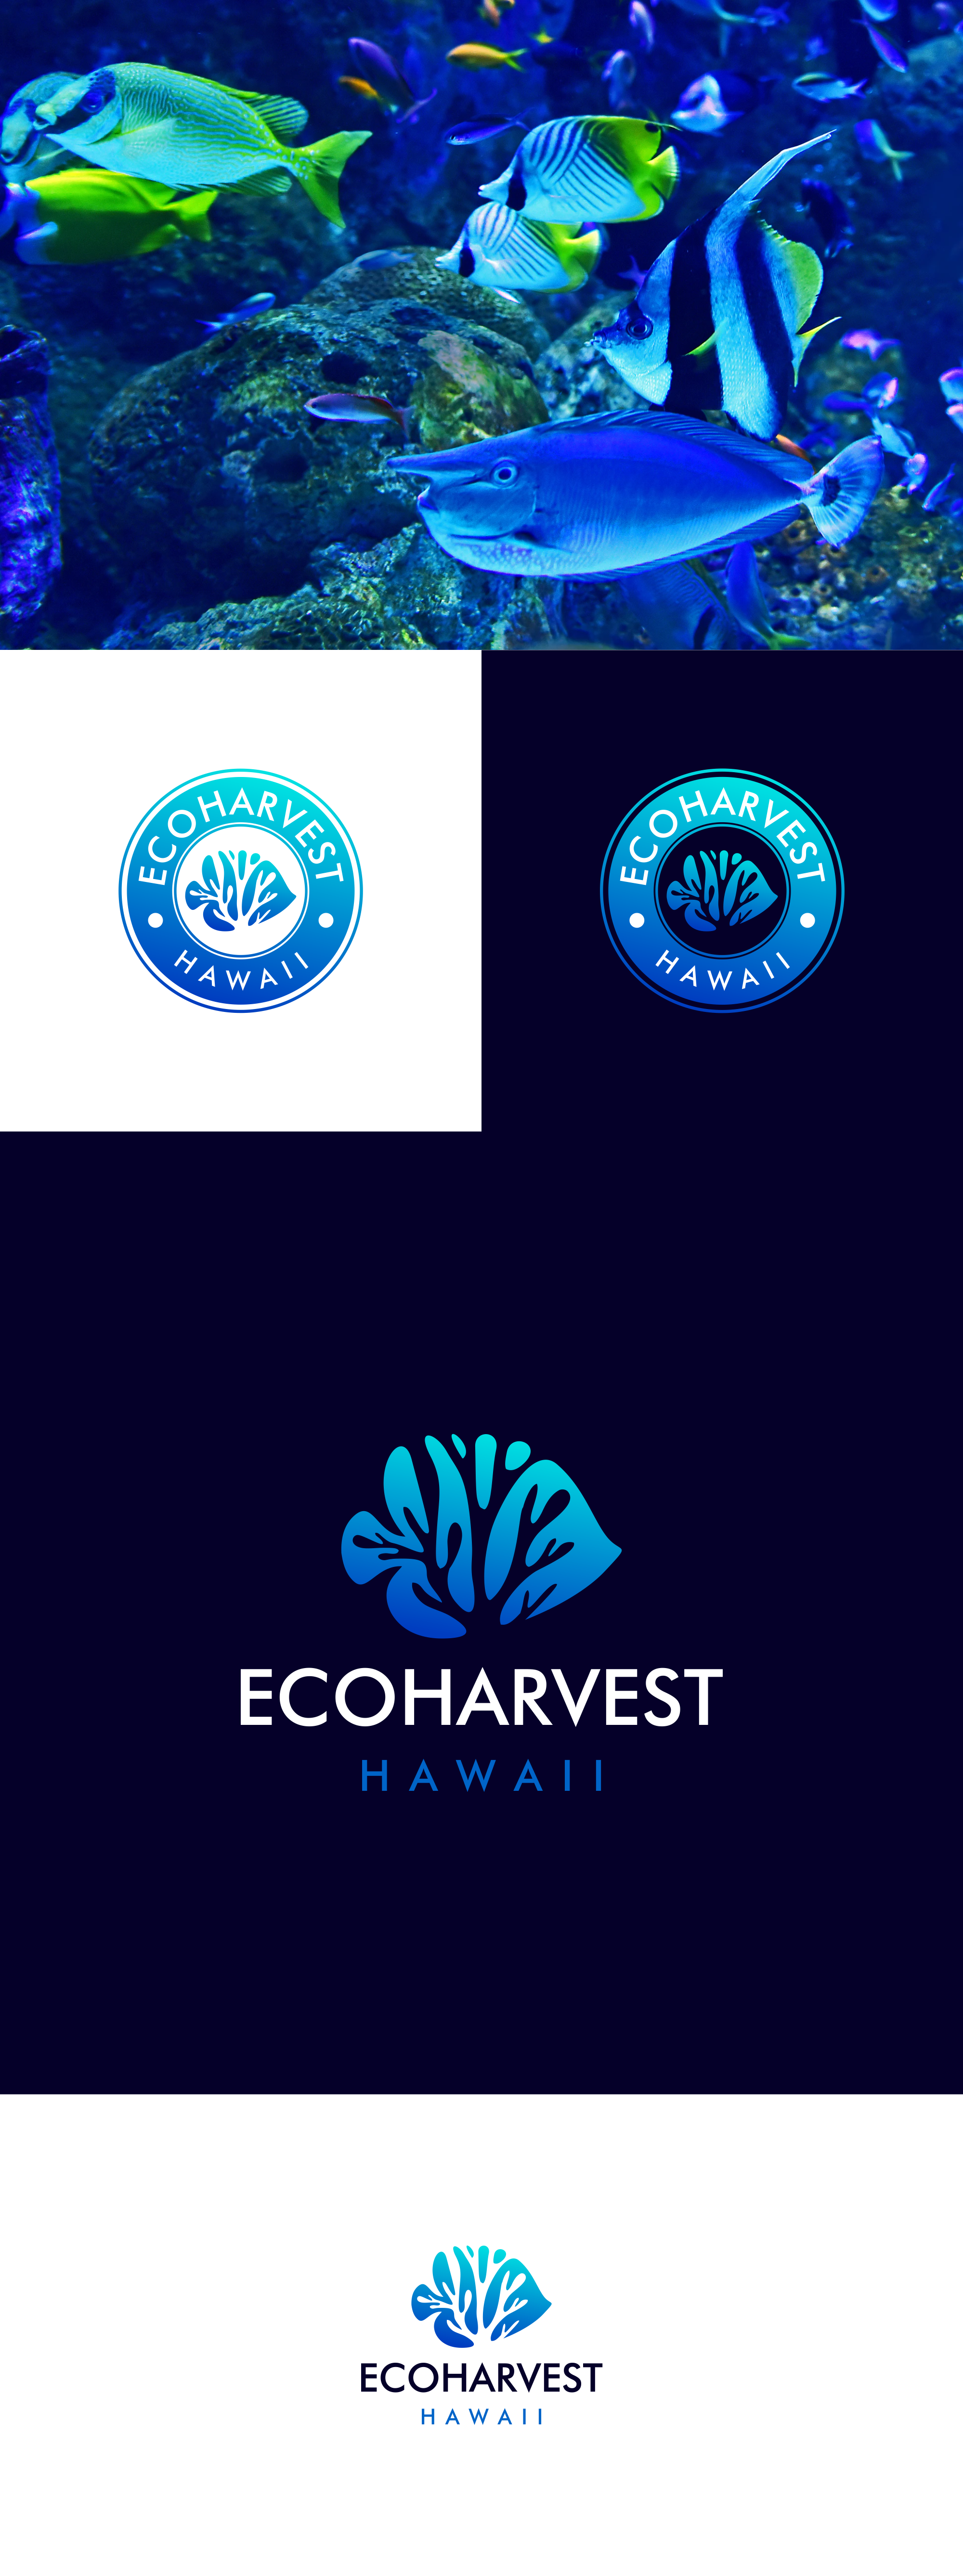 We need an amazing logo for our sustainable Hawaiian reef aquarium fish business.